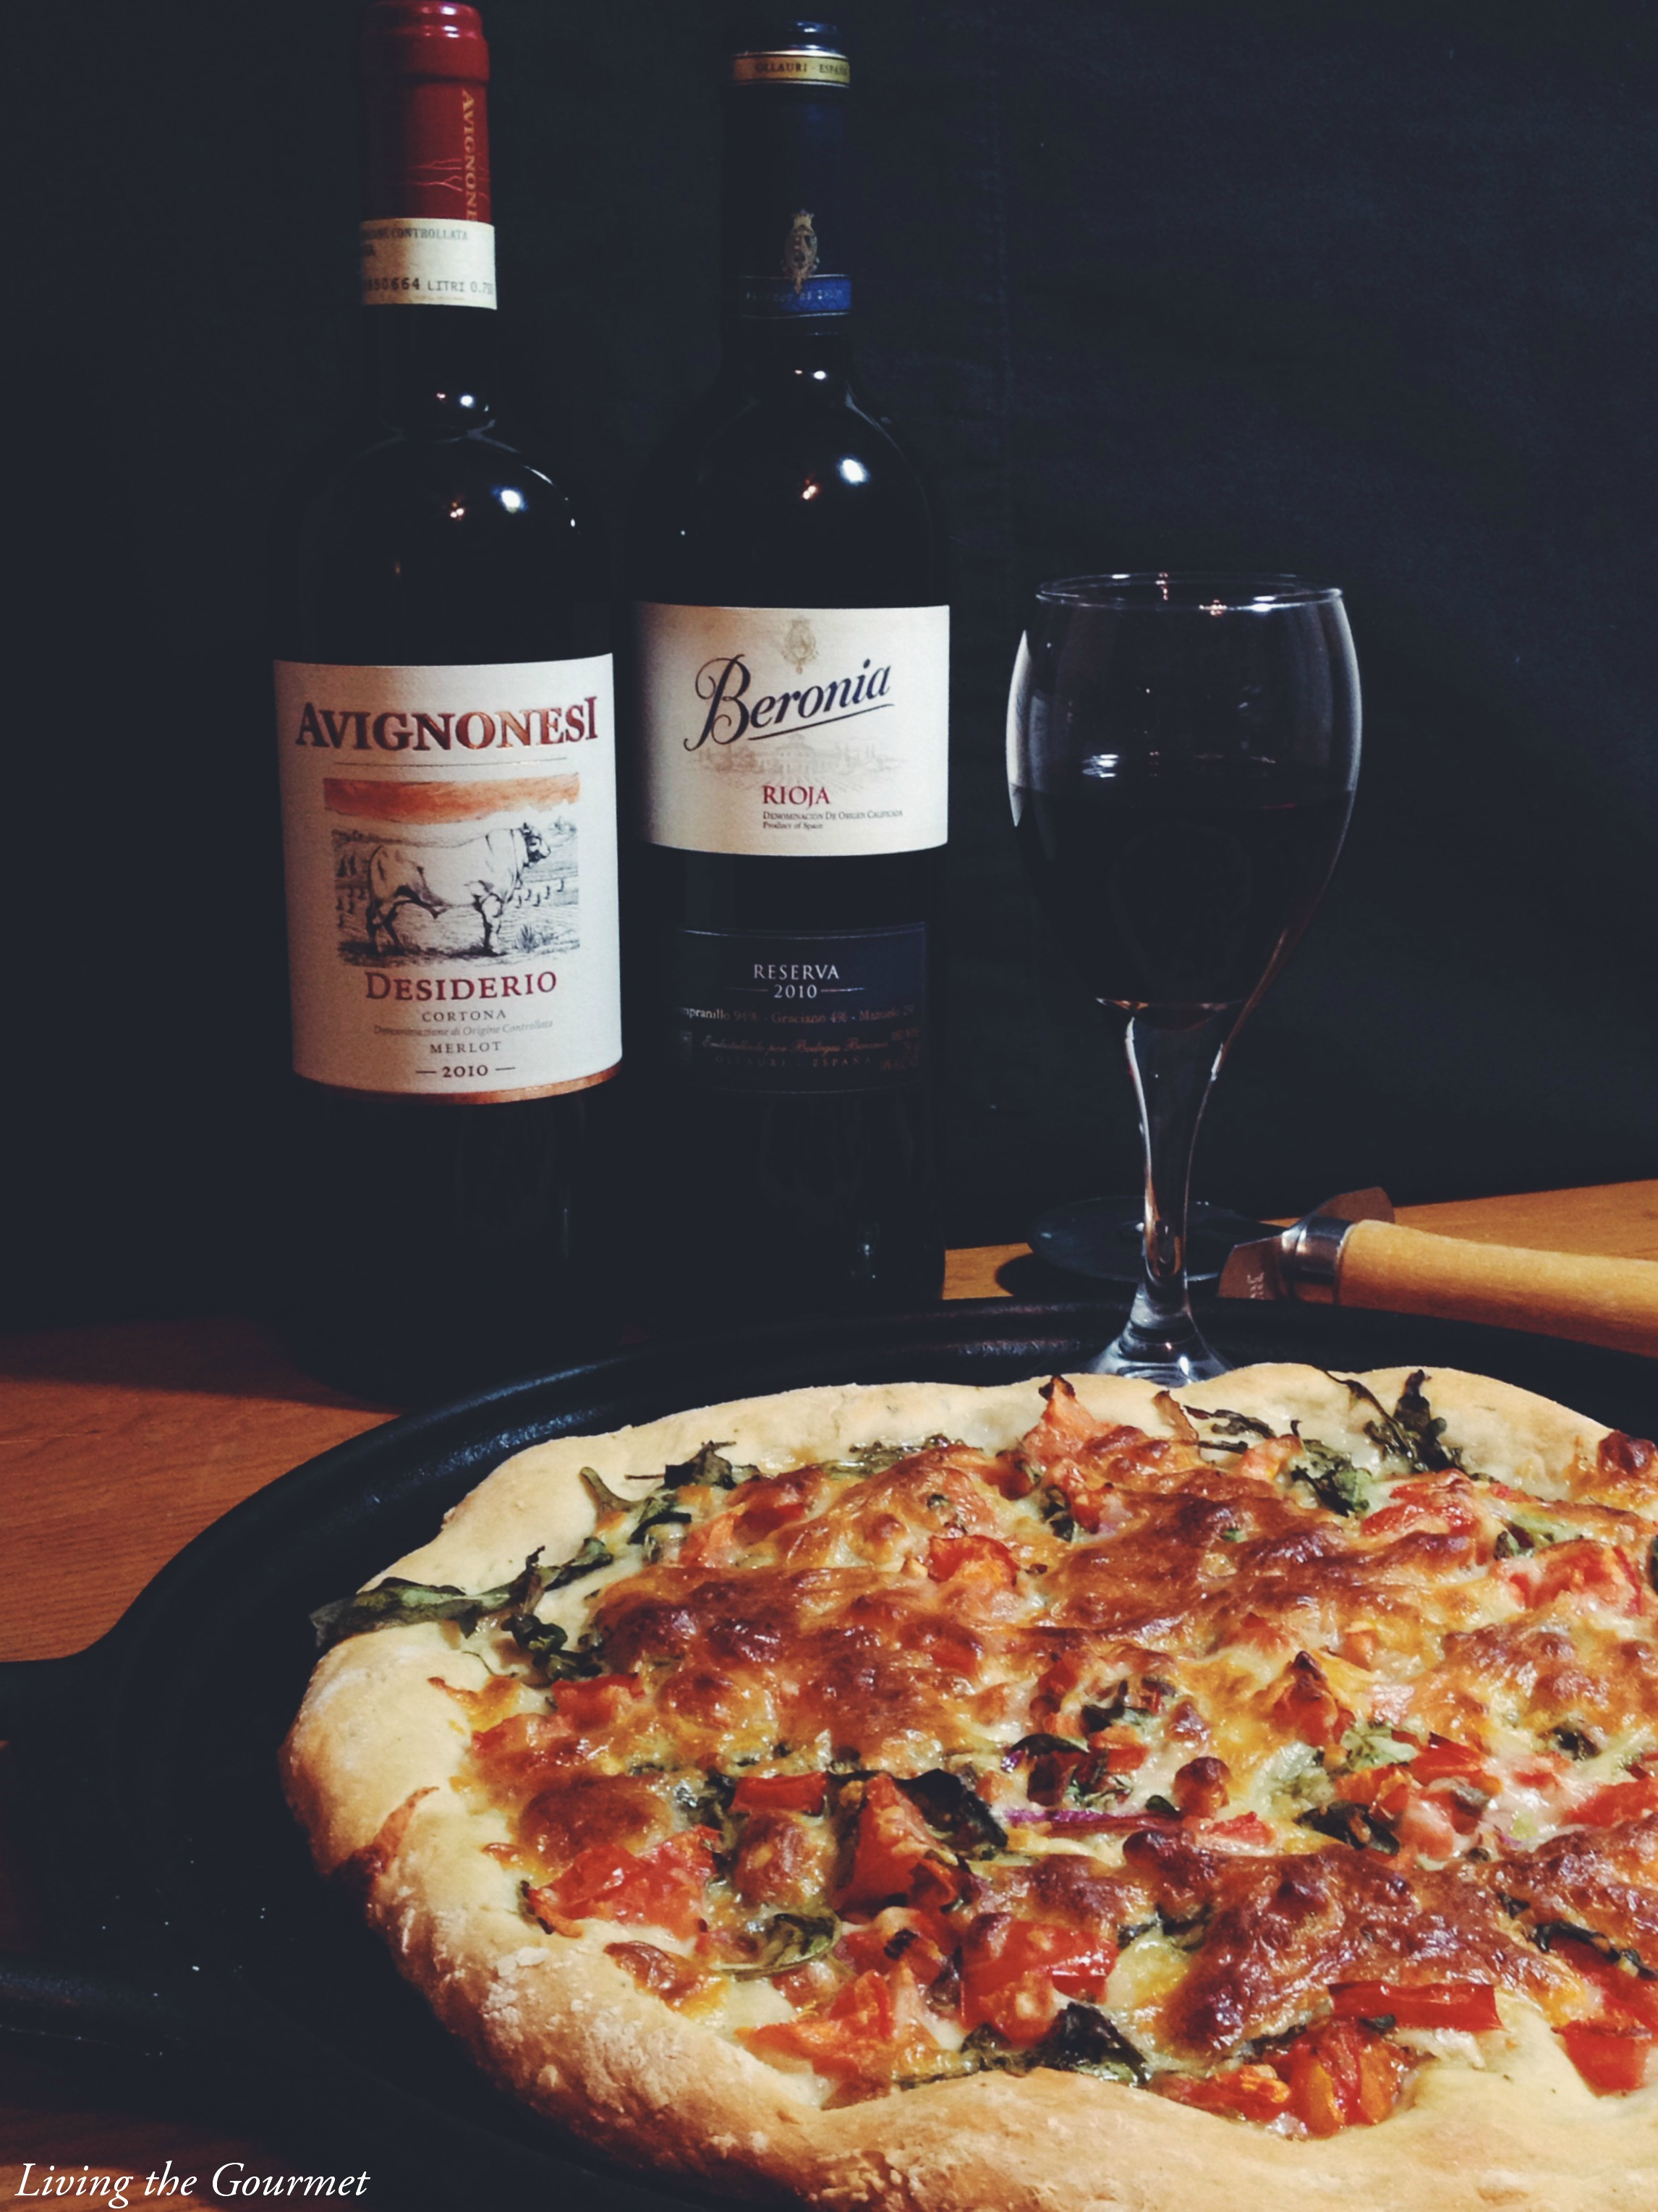 Living the Gourmet: Wine Pairings & Arugula Pizza